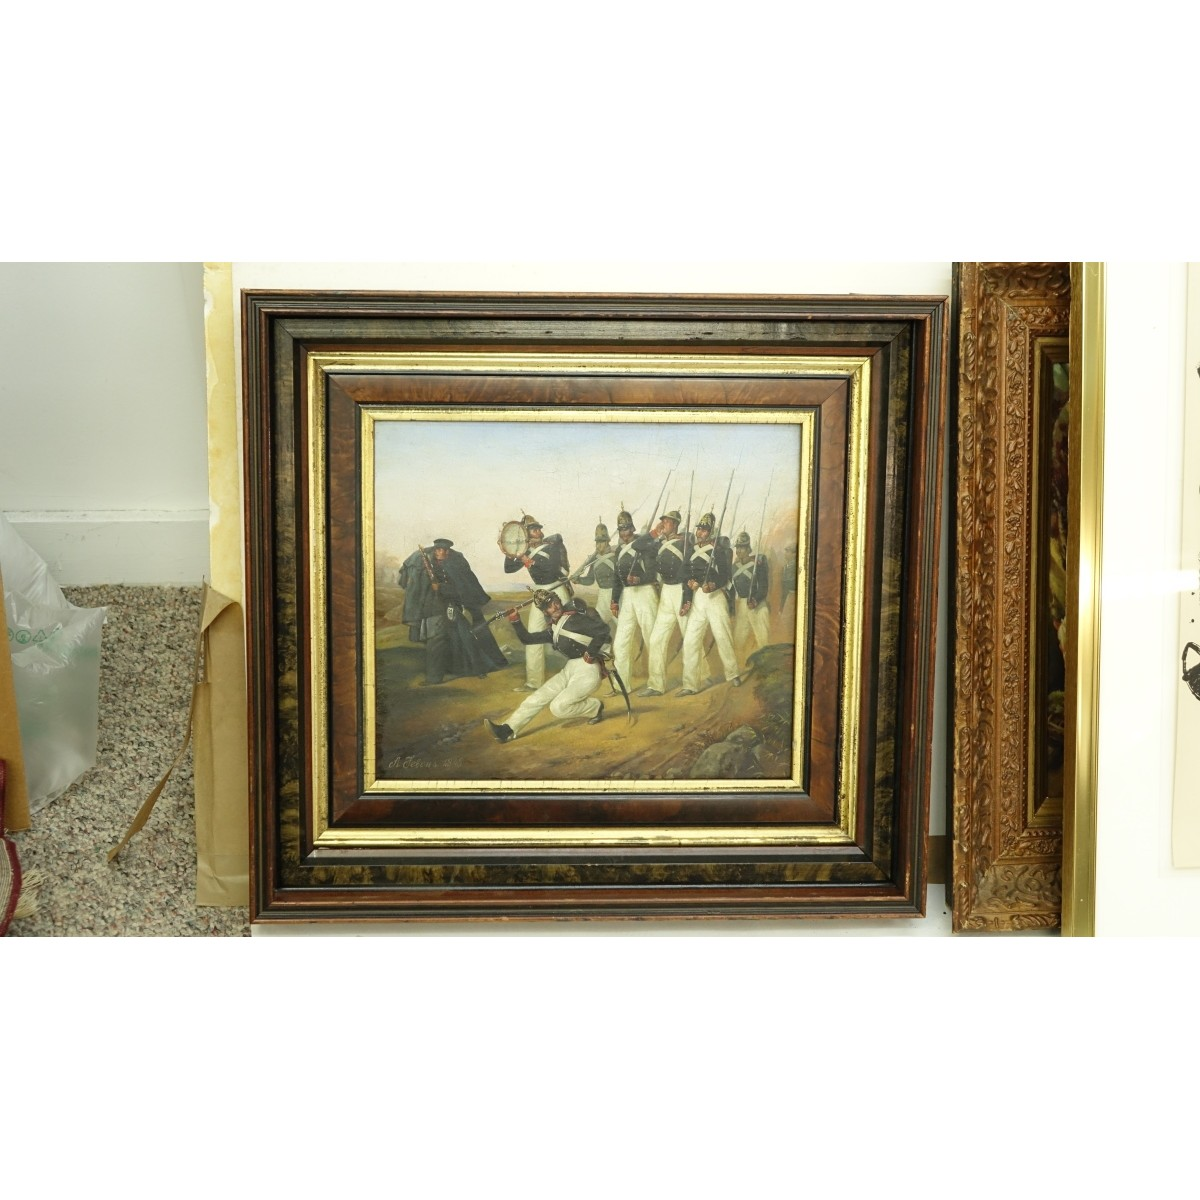 After: Adolf Jebens, Russian (1819-1888) Oil/Board